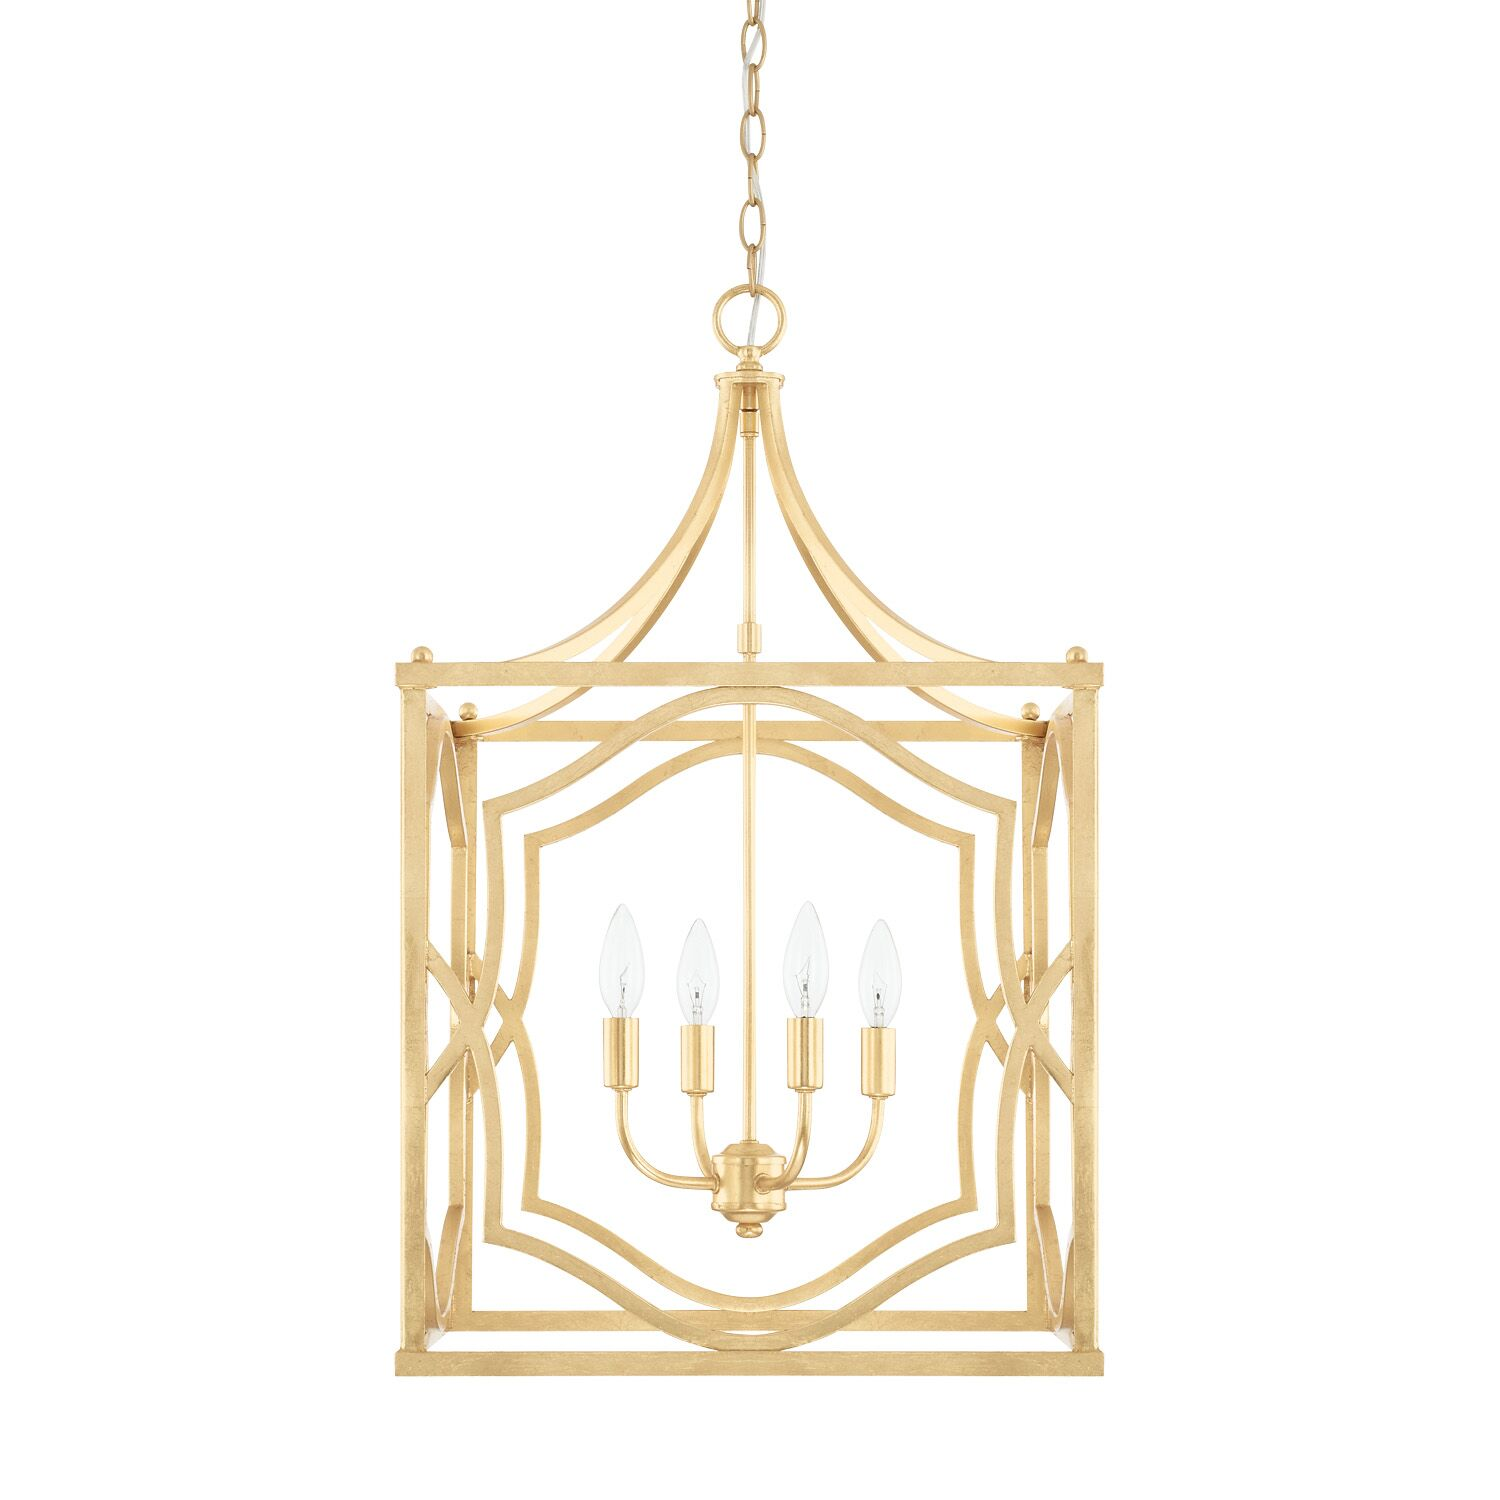 Destrey 4-Light Metal Foyer Pendant